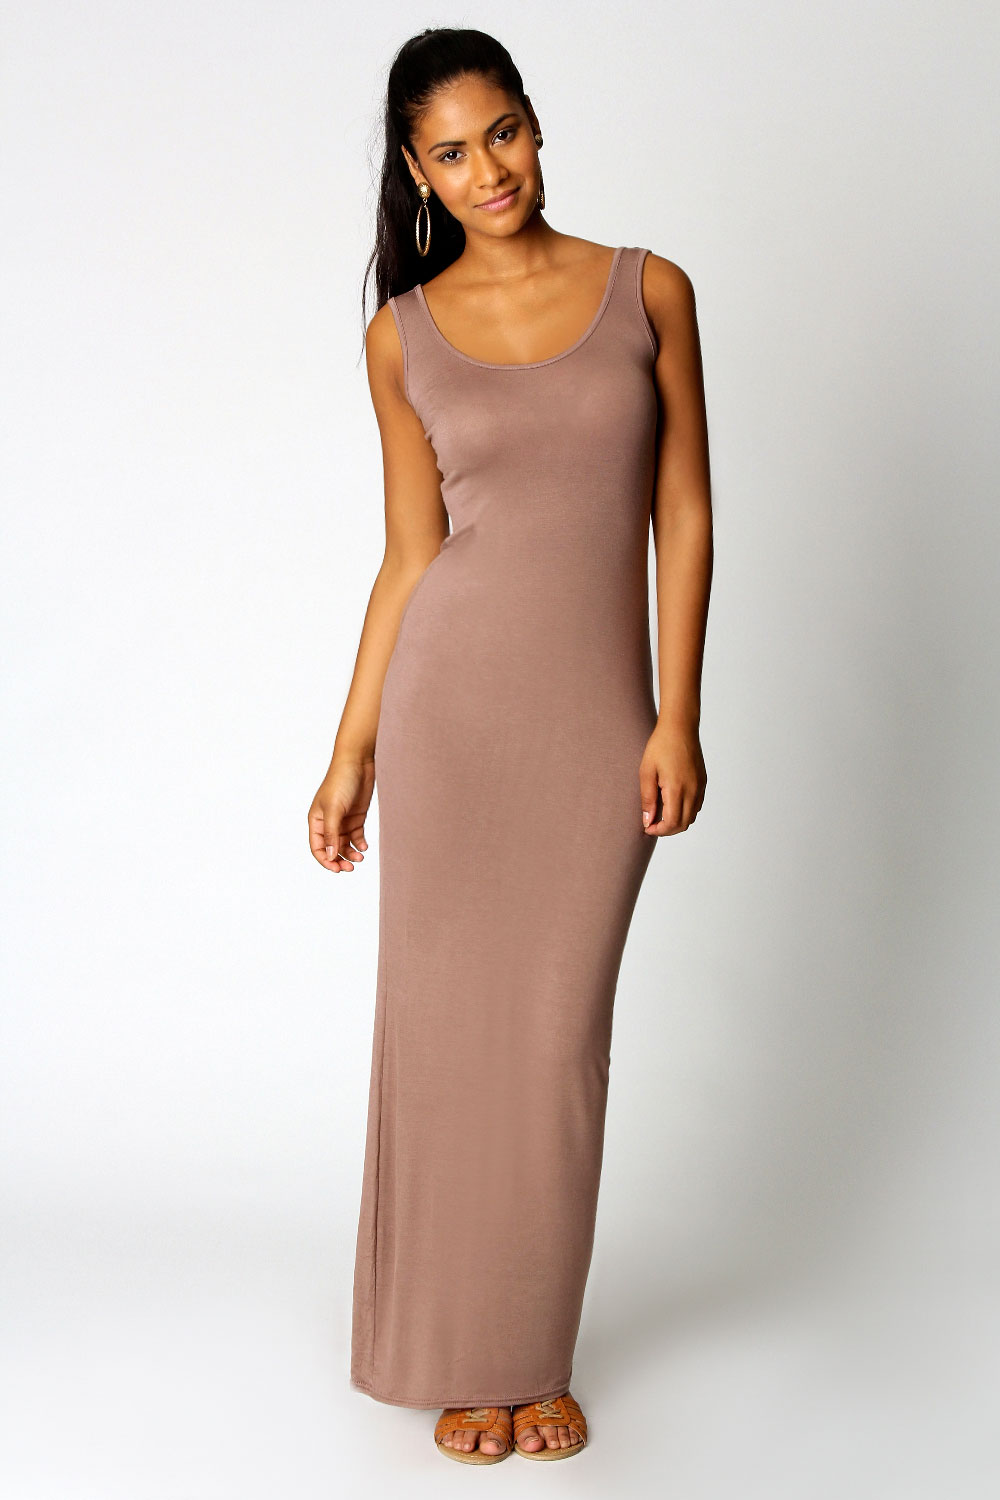 Business Casual Maxi Dresses - m